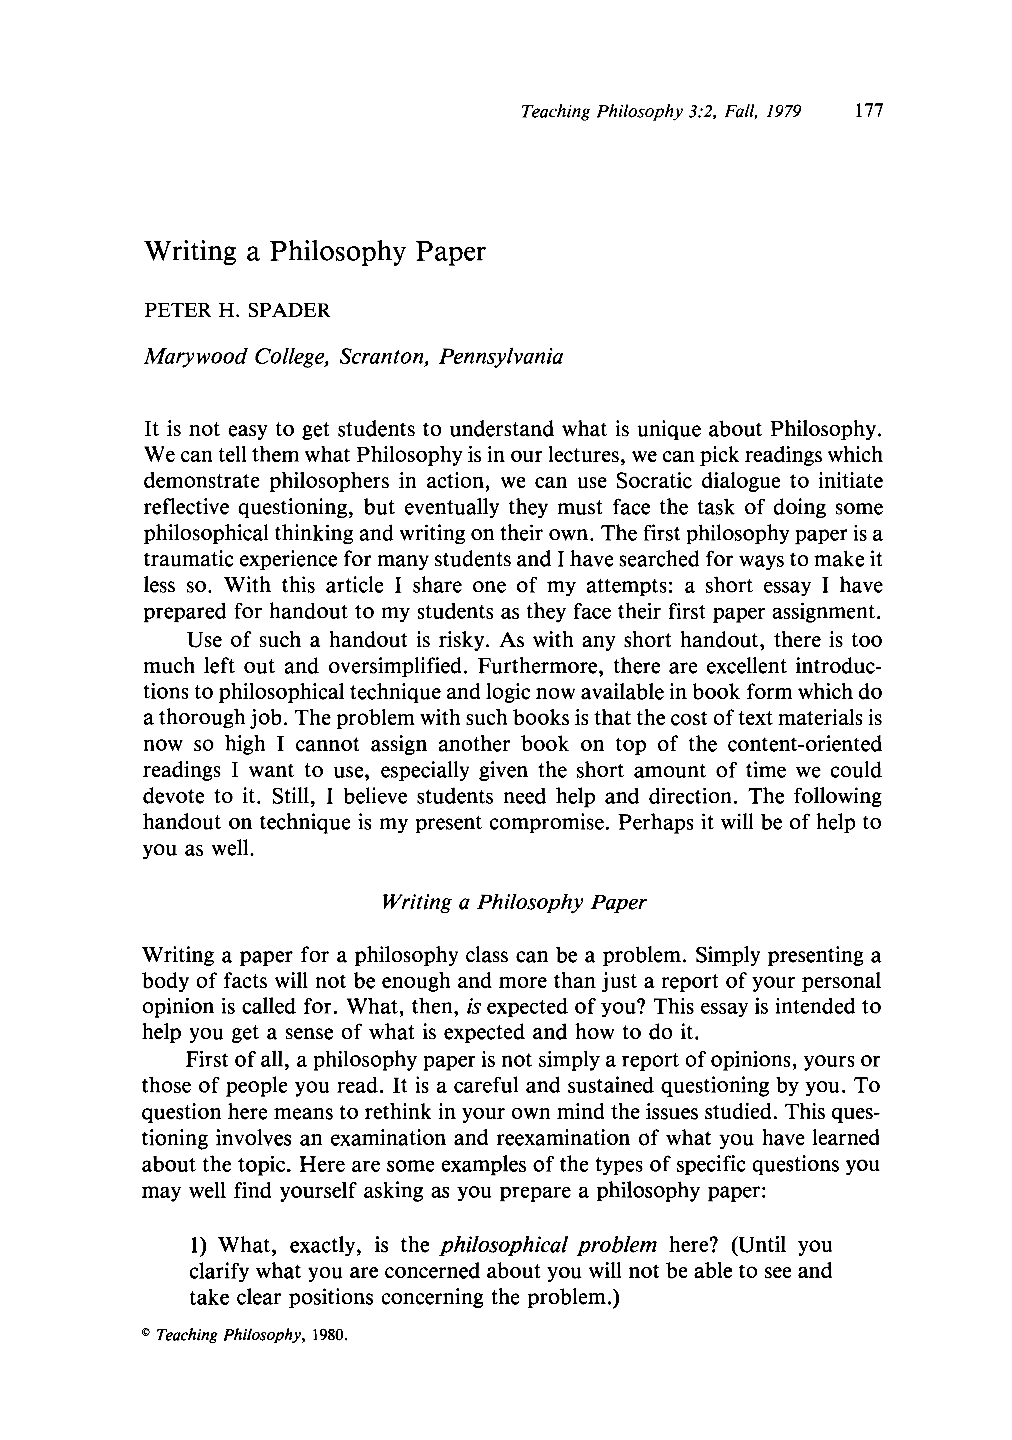 how to teach philosophy Develop your teaching philosophy identifying the connection between personal learning experiences and the reasons for using a particular teaching approach.